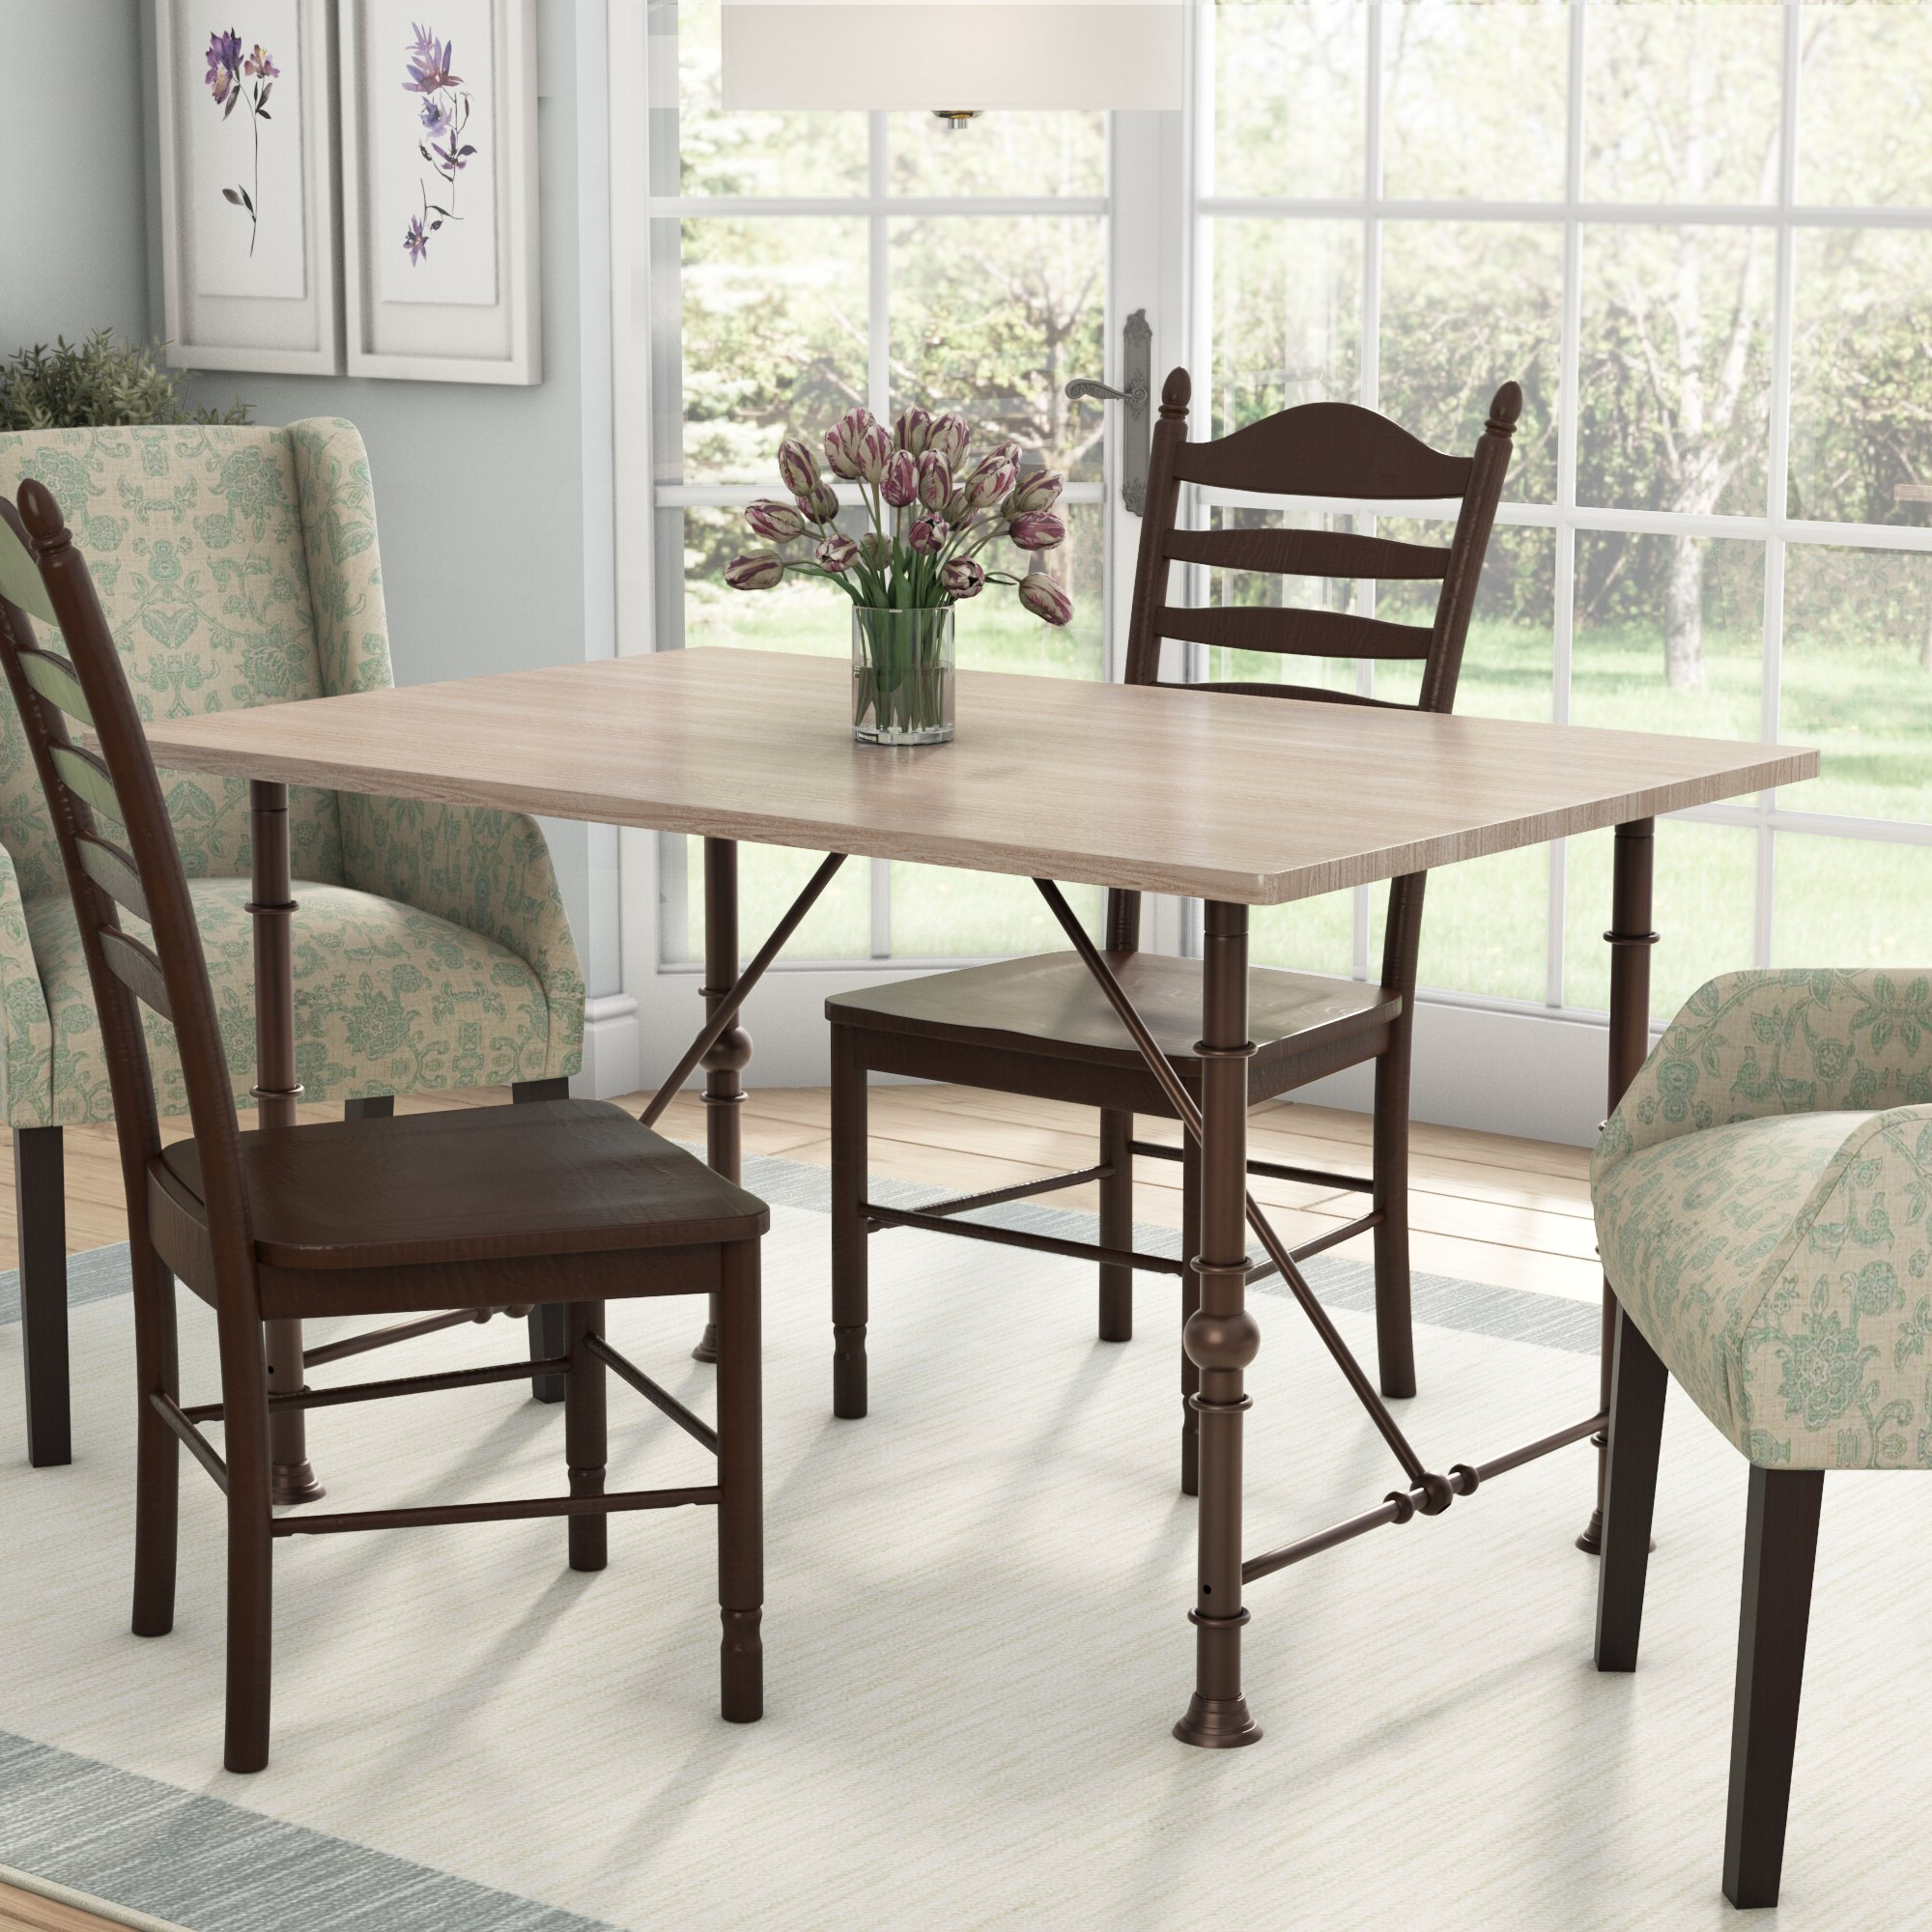 2020 Avery Rectangular Dining Tables With Avery Dining Table (View 7 of 25)